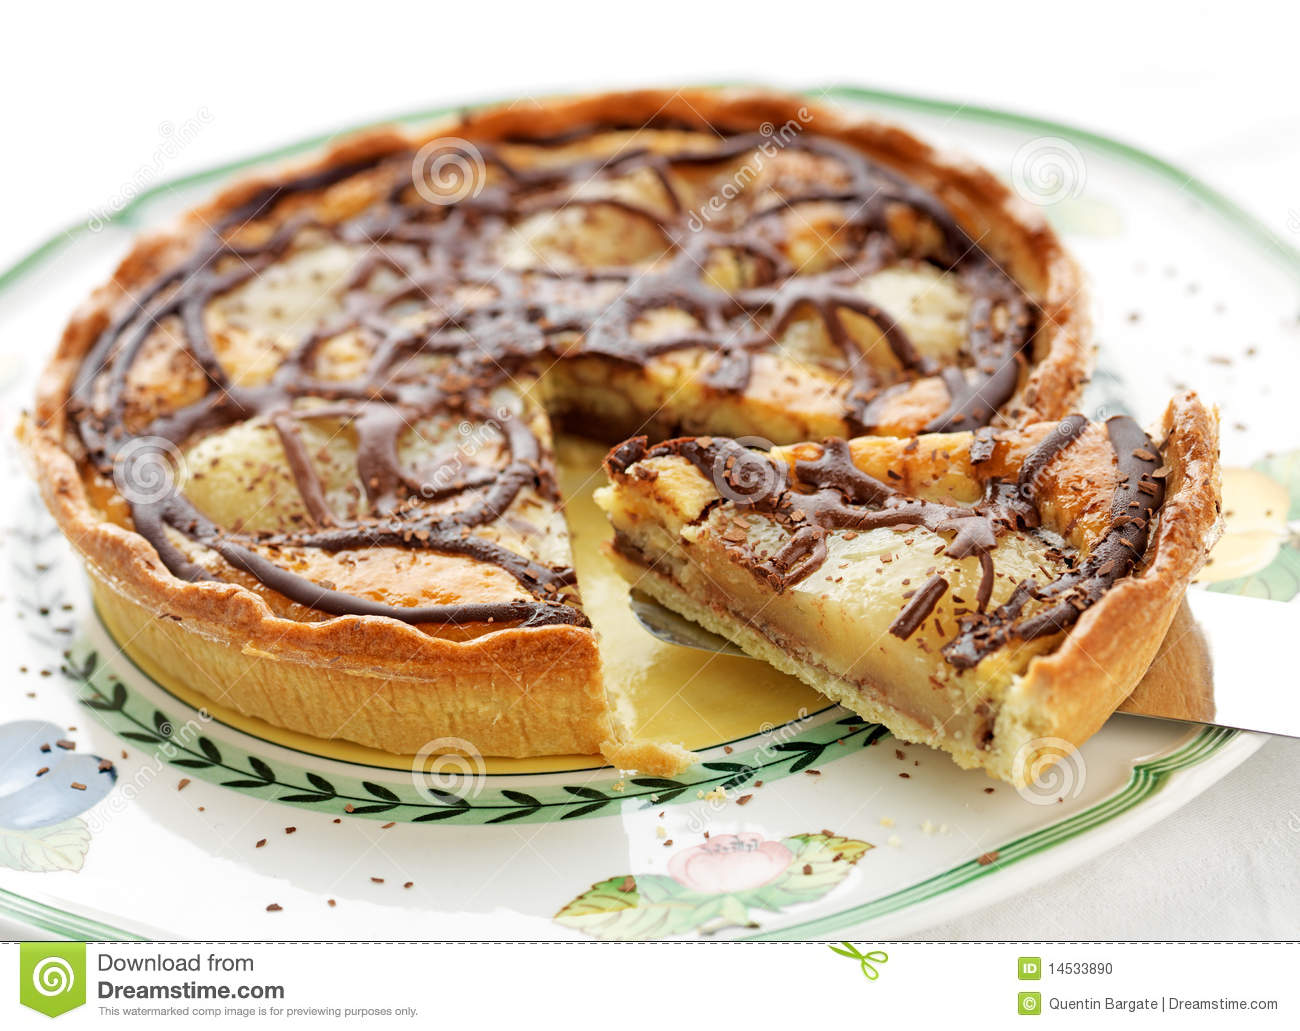 Pear And Chocolate Tart Stock Photo - Image: 14533890